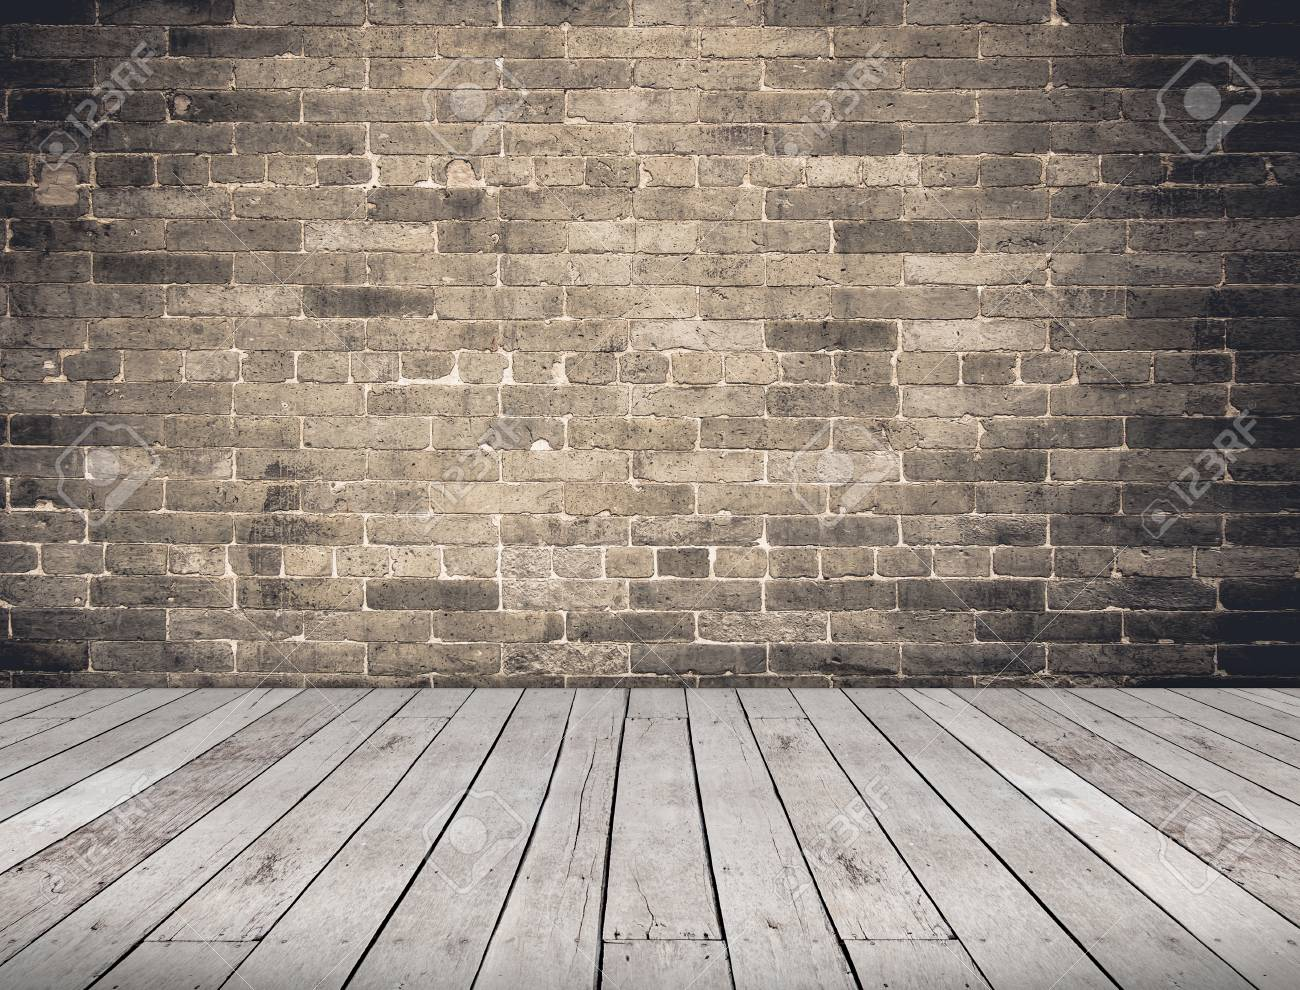 Empty Room Perspective Grunge Brick Wall And Wood Plank Floor